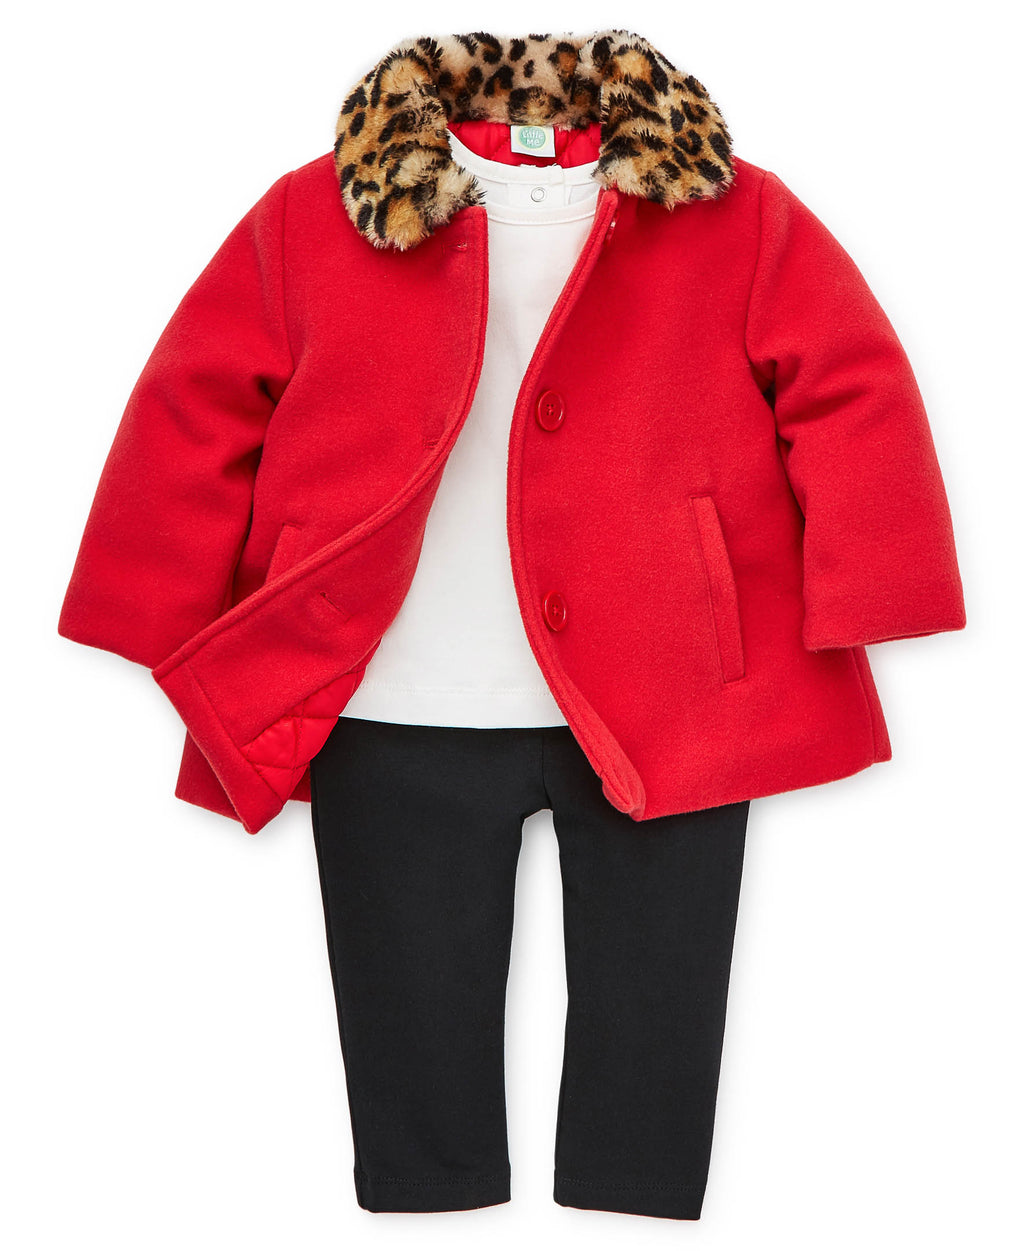 Red Wool Jacket Set